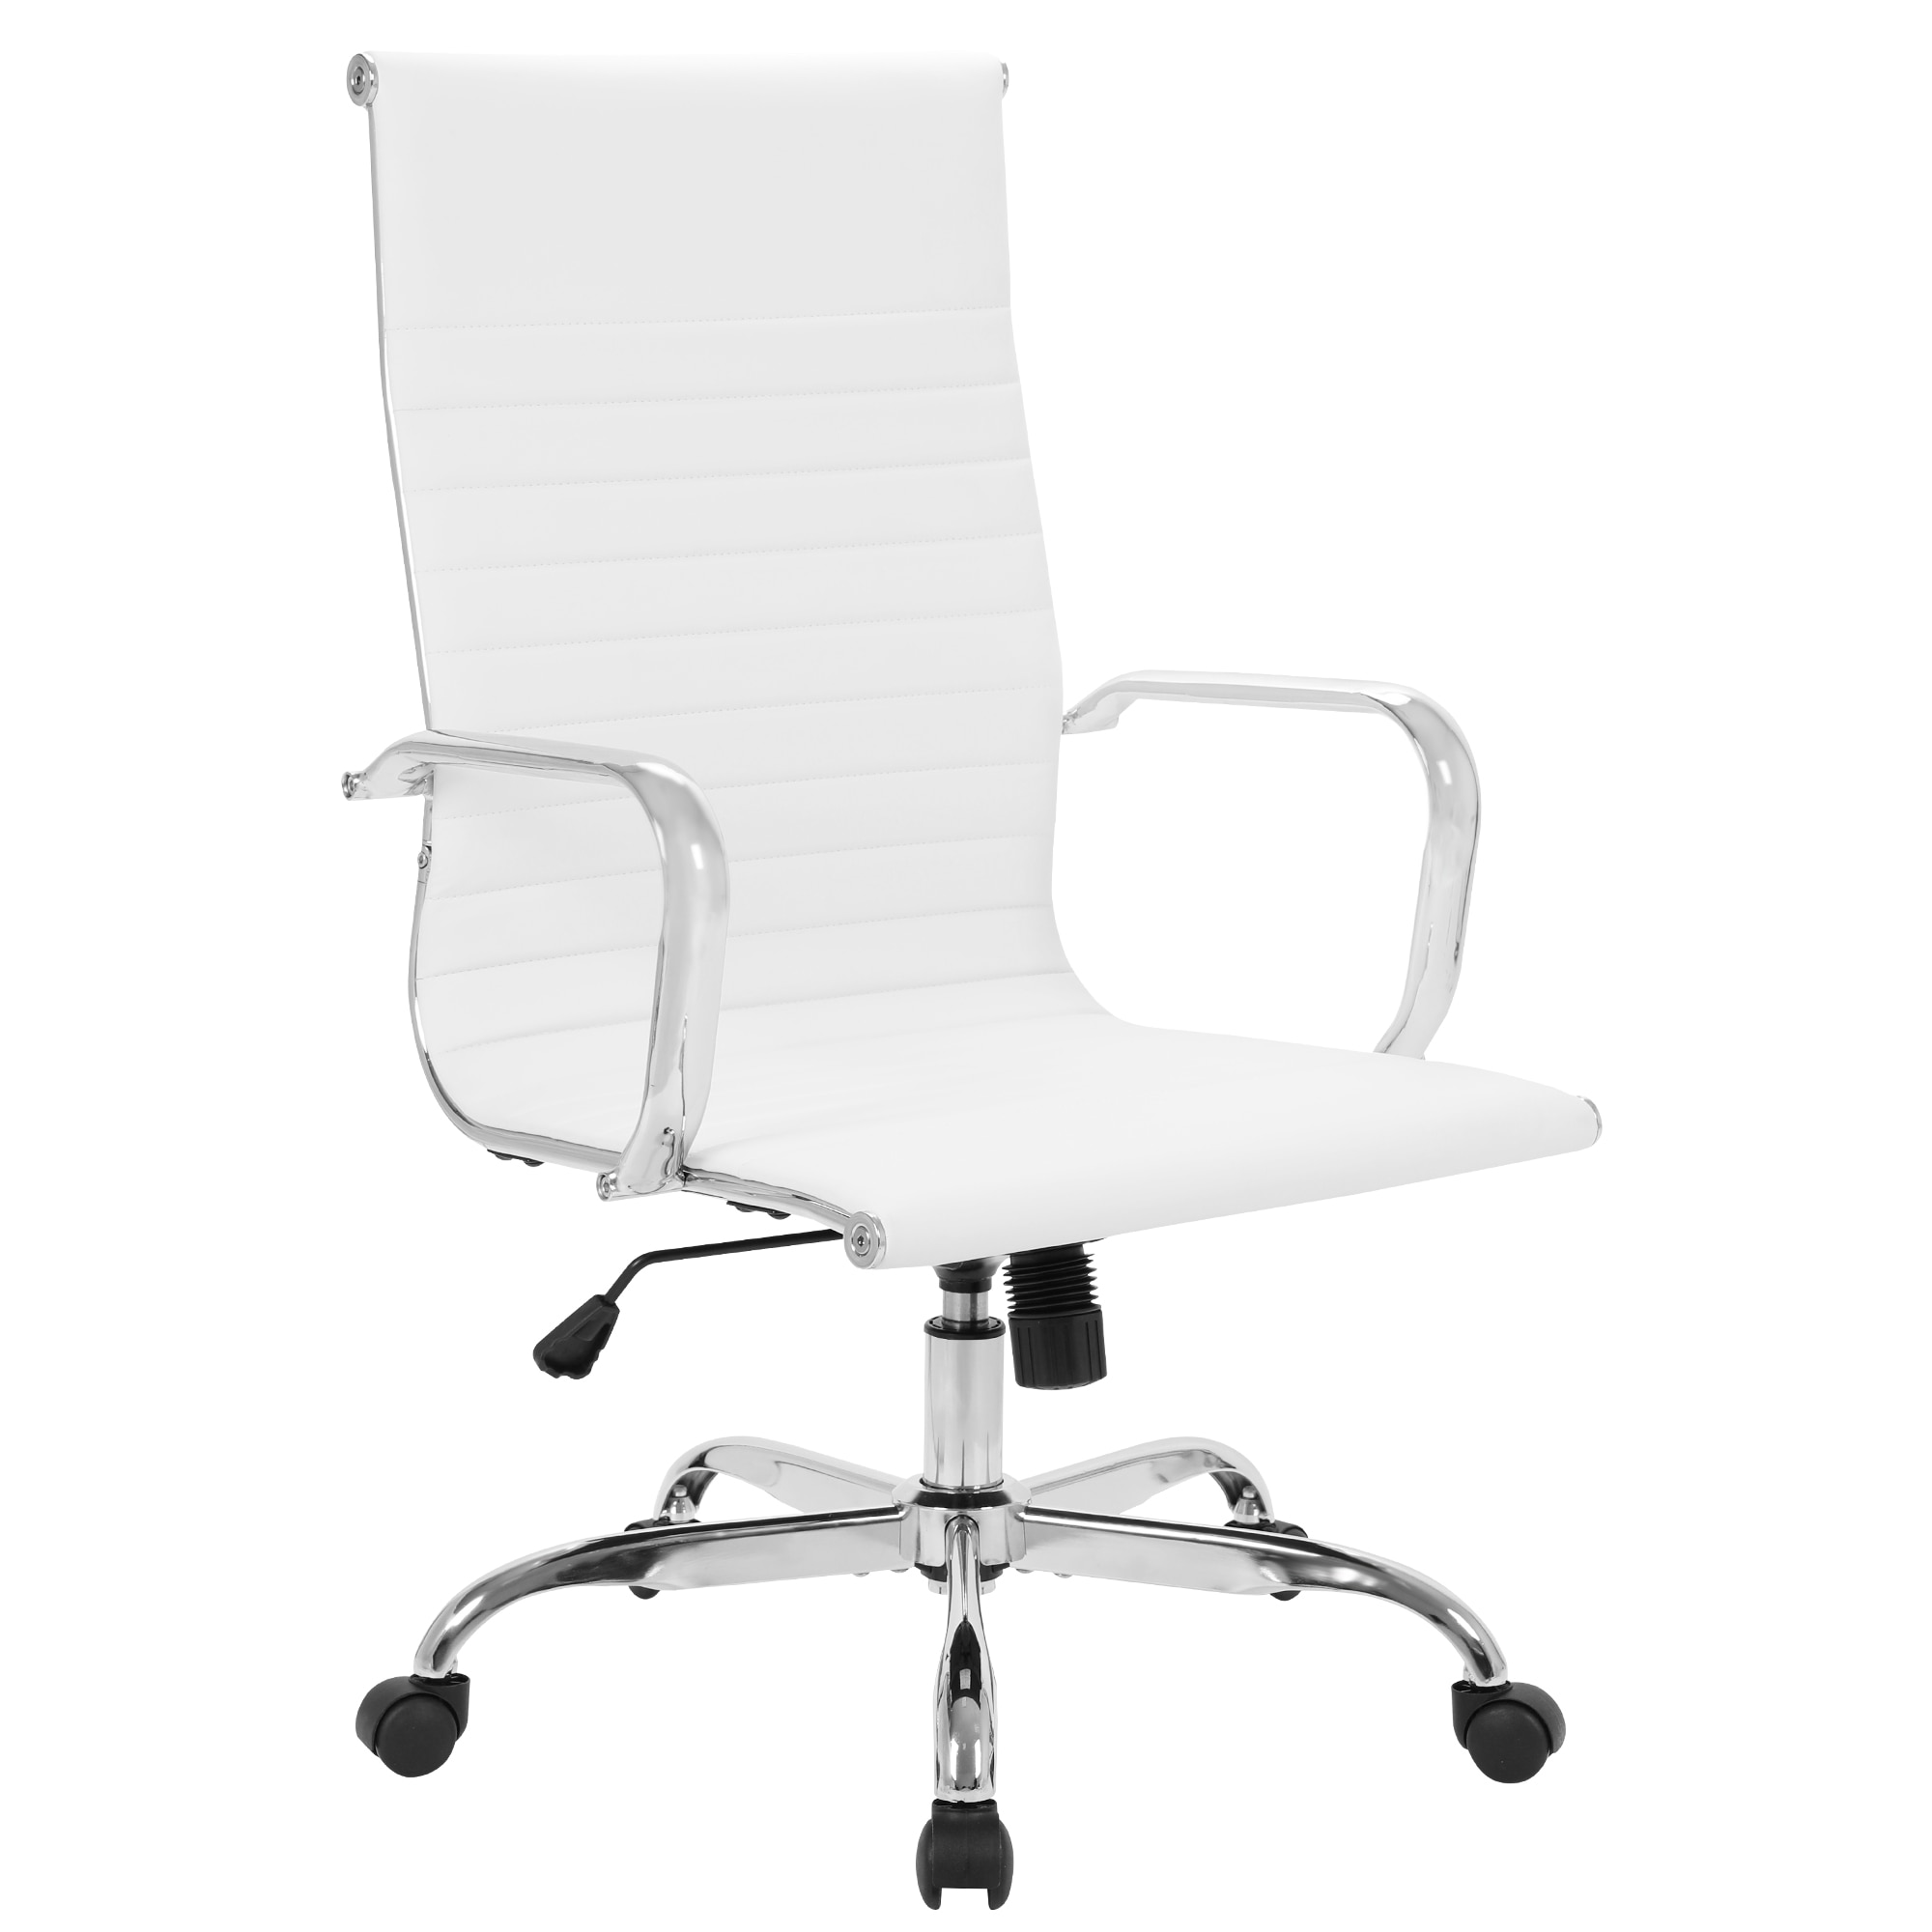 homall ribbed office chair mid back pu leather executive conference desk chair adjustable swivel chair with comfortable arms GOSKEY High Back Office Chair PU Leather Ribbed Swivel Tilt Adjustable Home Desk Chair with Armrest Executive Conference